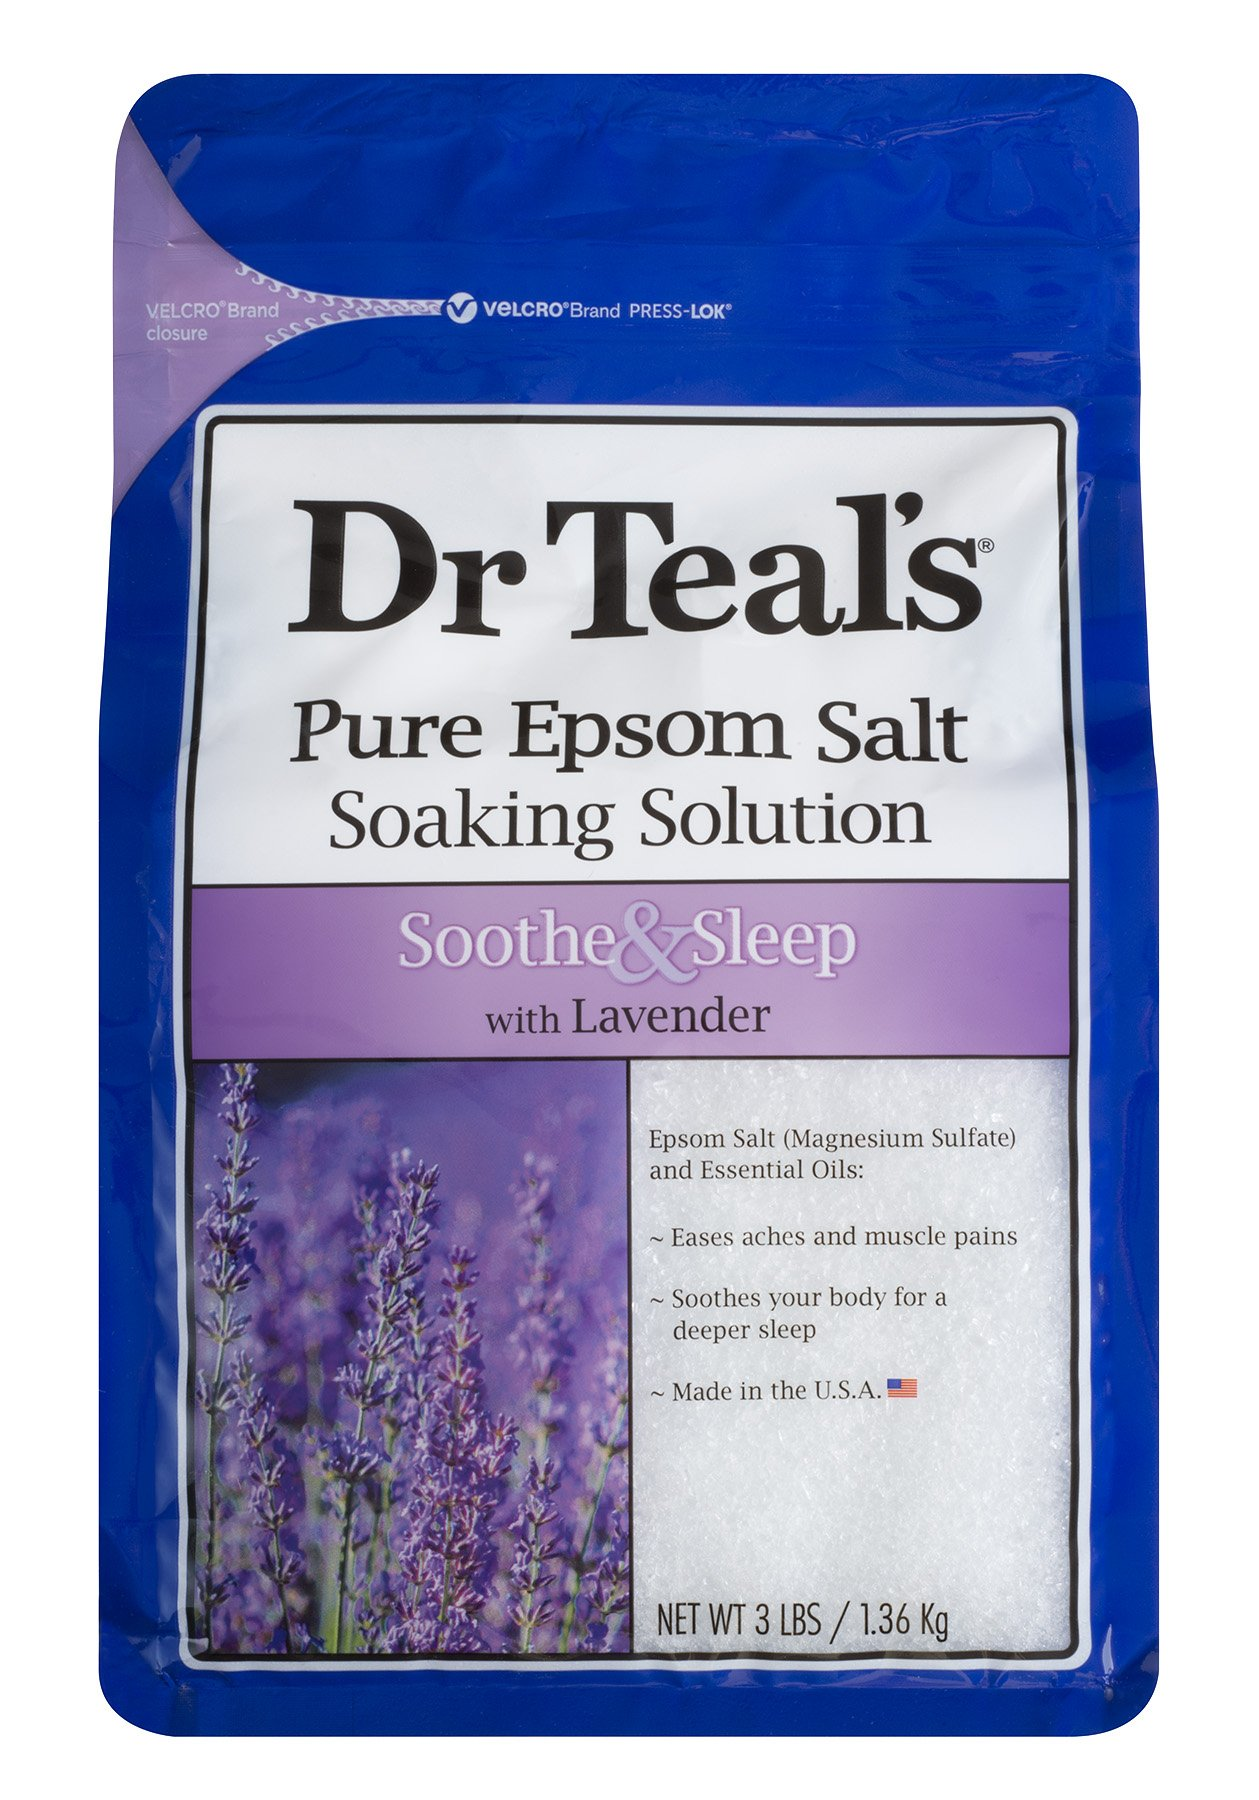 Dr Teal's Pure Epsom Salt Soothe and Sleep with Lavender, 1.36Kilogram